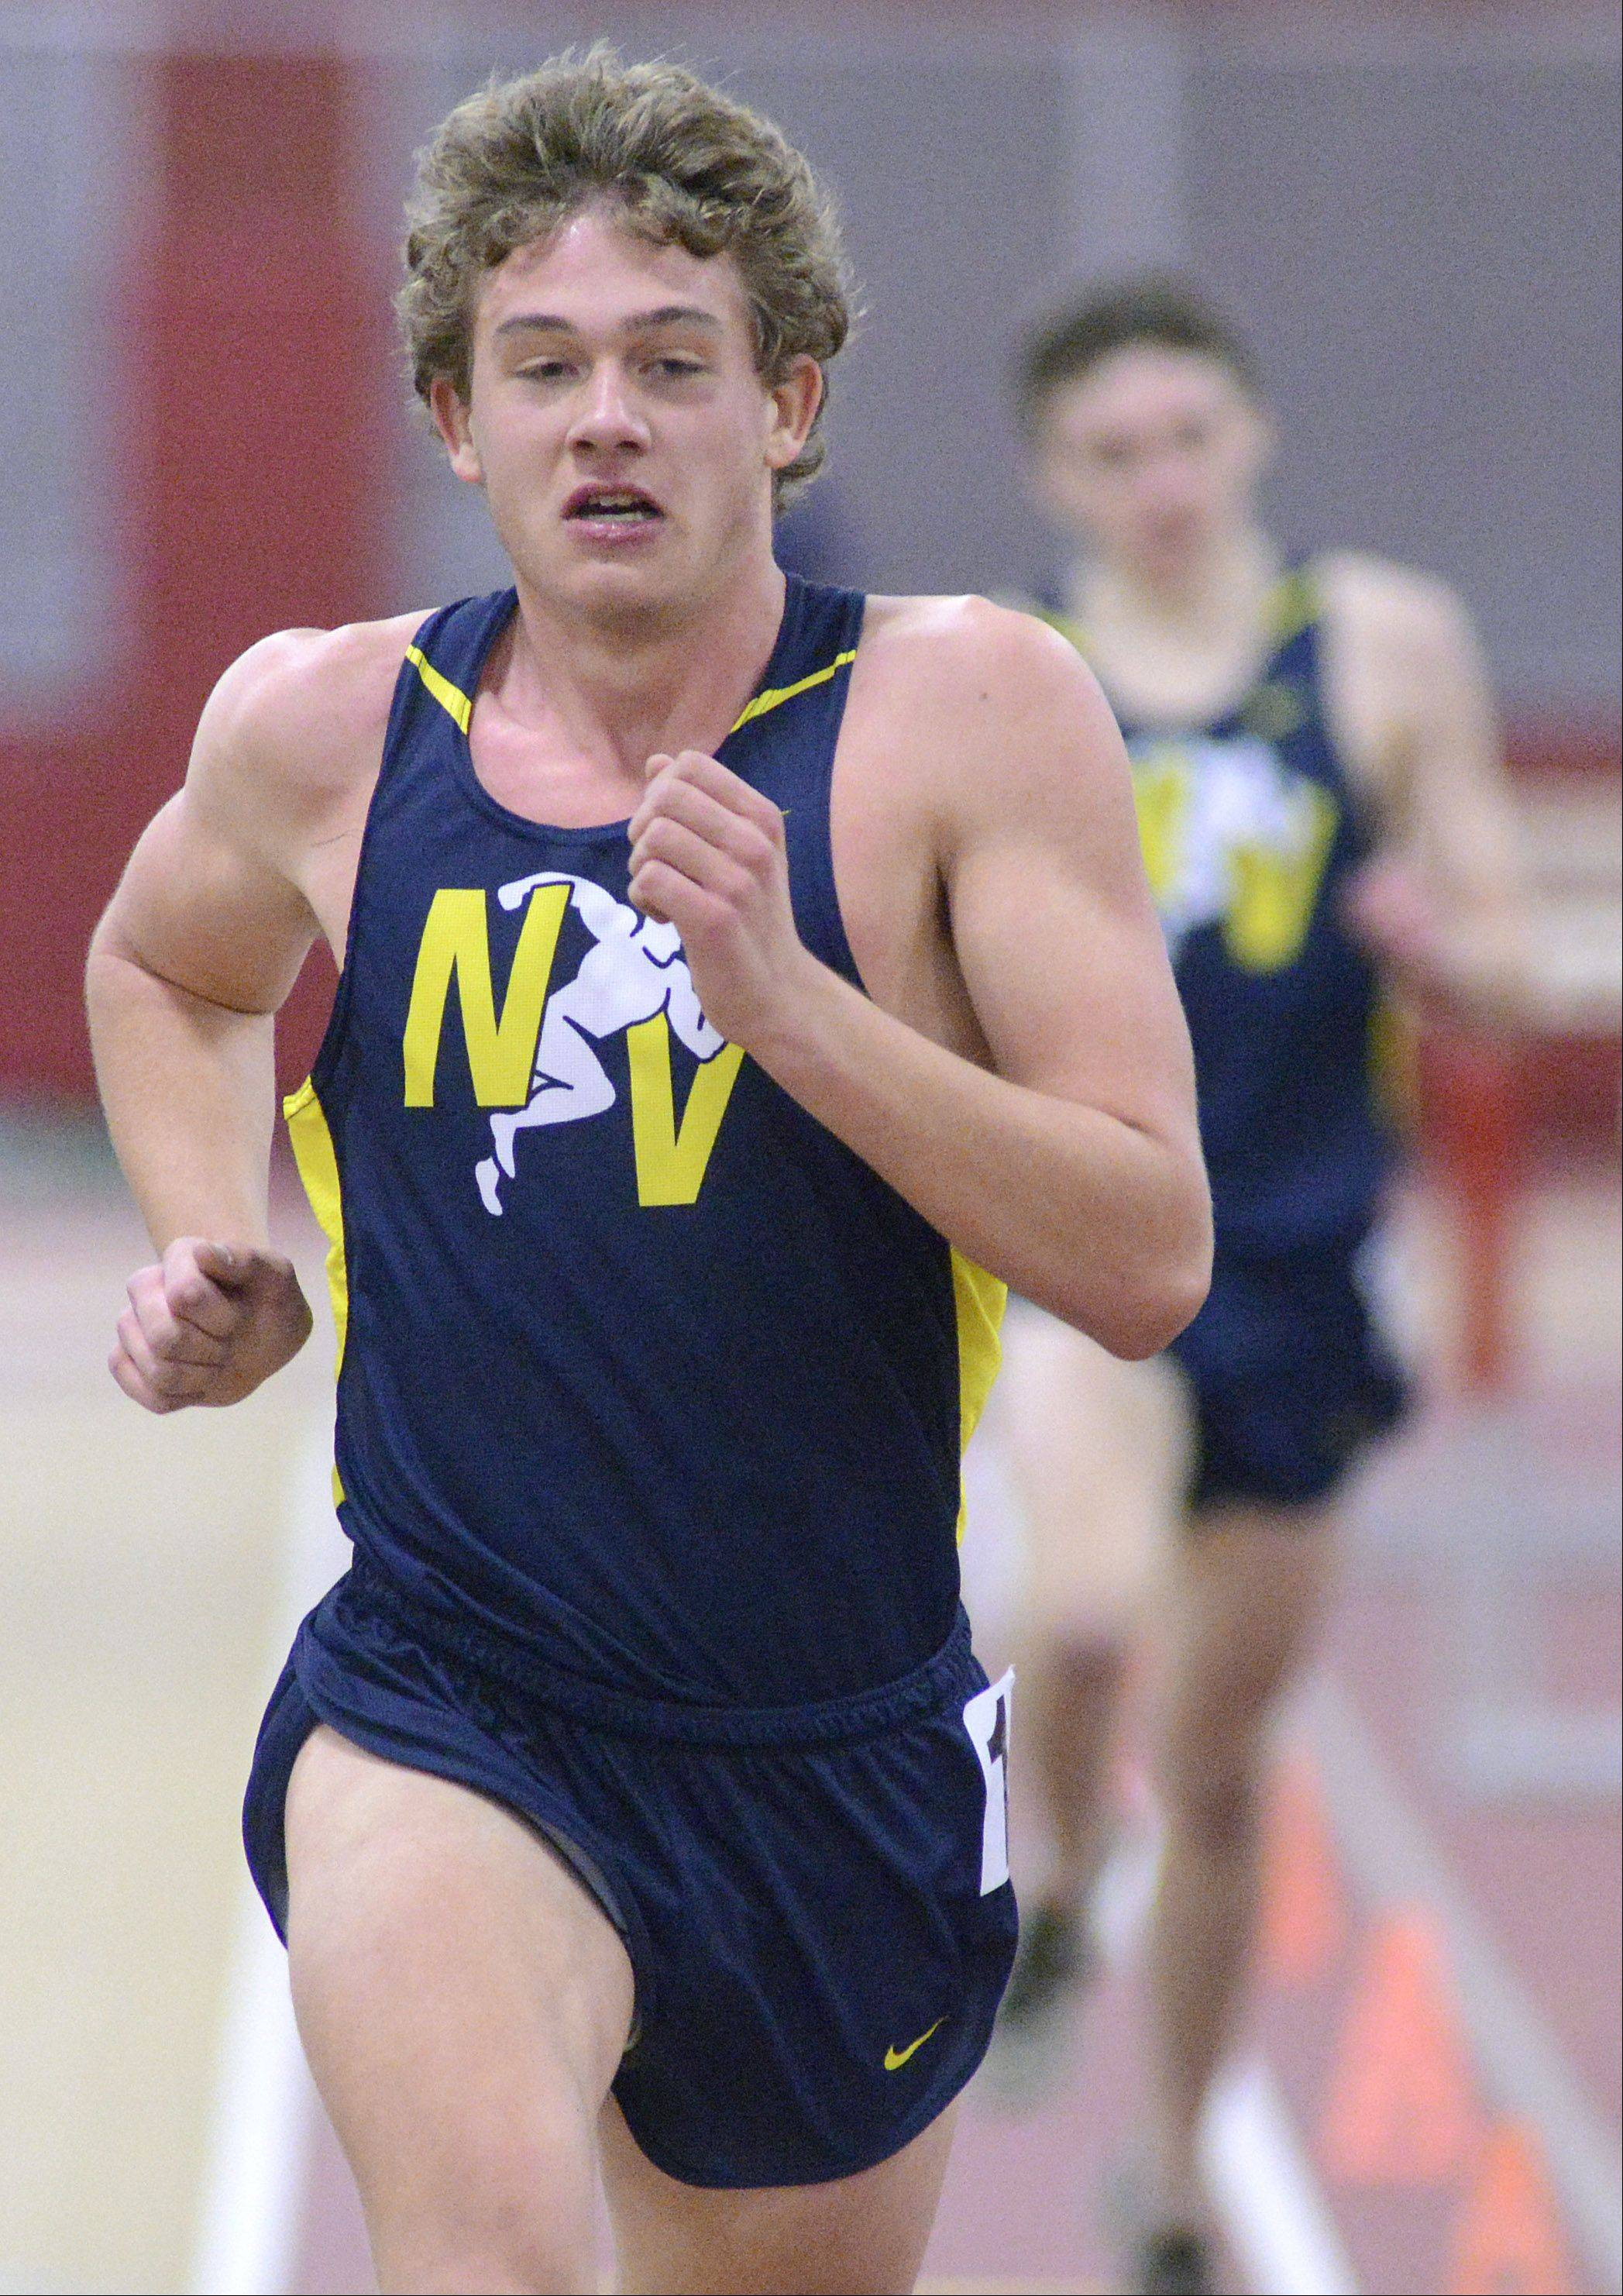 Neuqua Valley's Nick Bushelle wins the 3200 meter run at the Upstate Eight Conference in Batavia on Saturday, March 16.